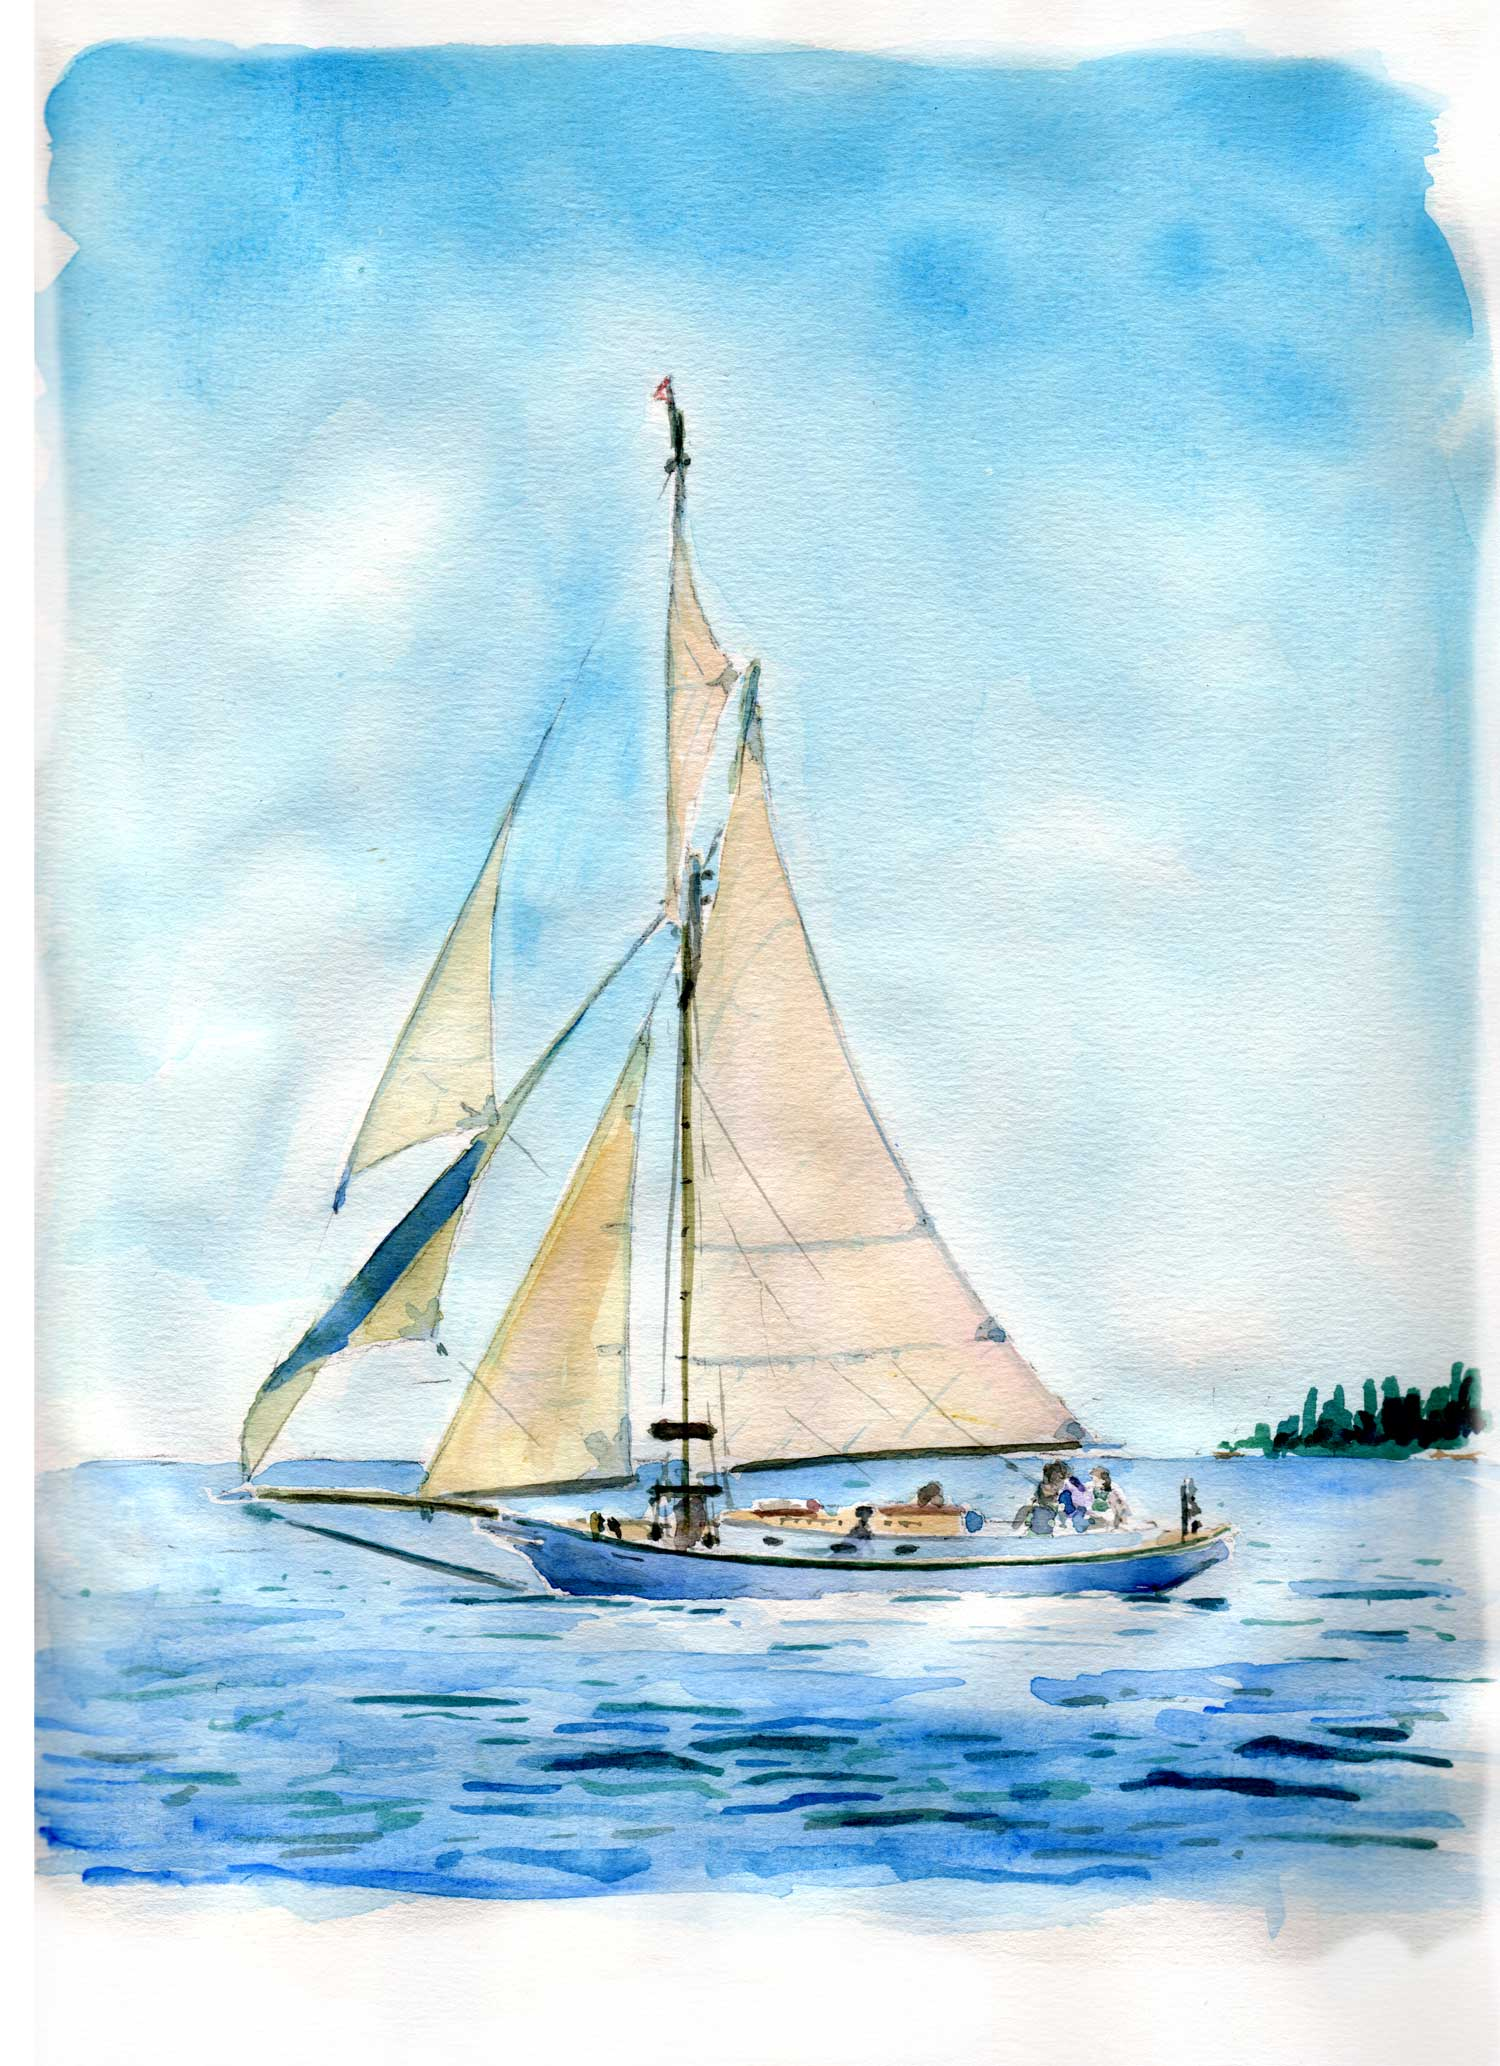 one of my watercolors of our boat with all sails set